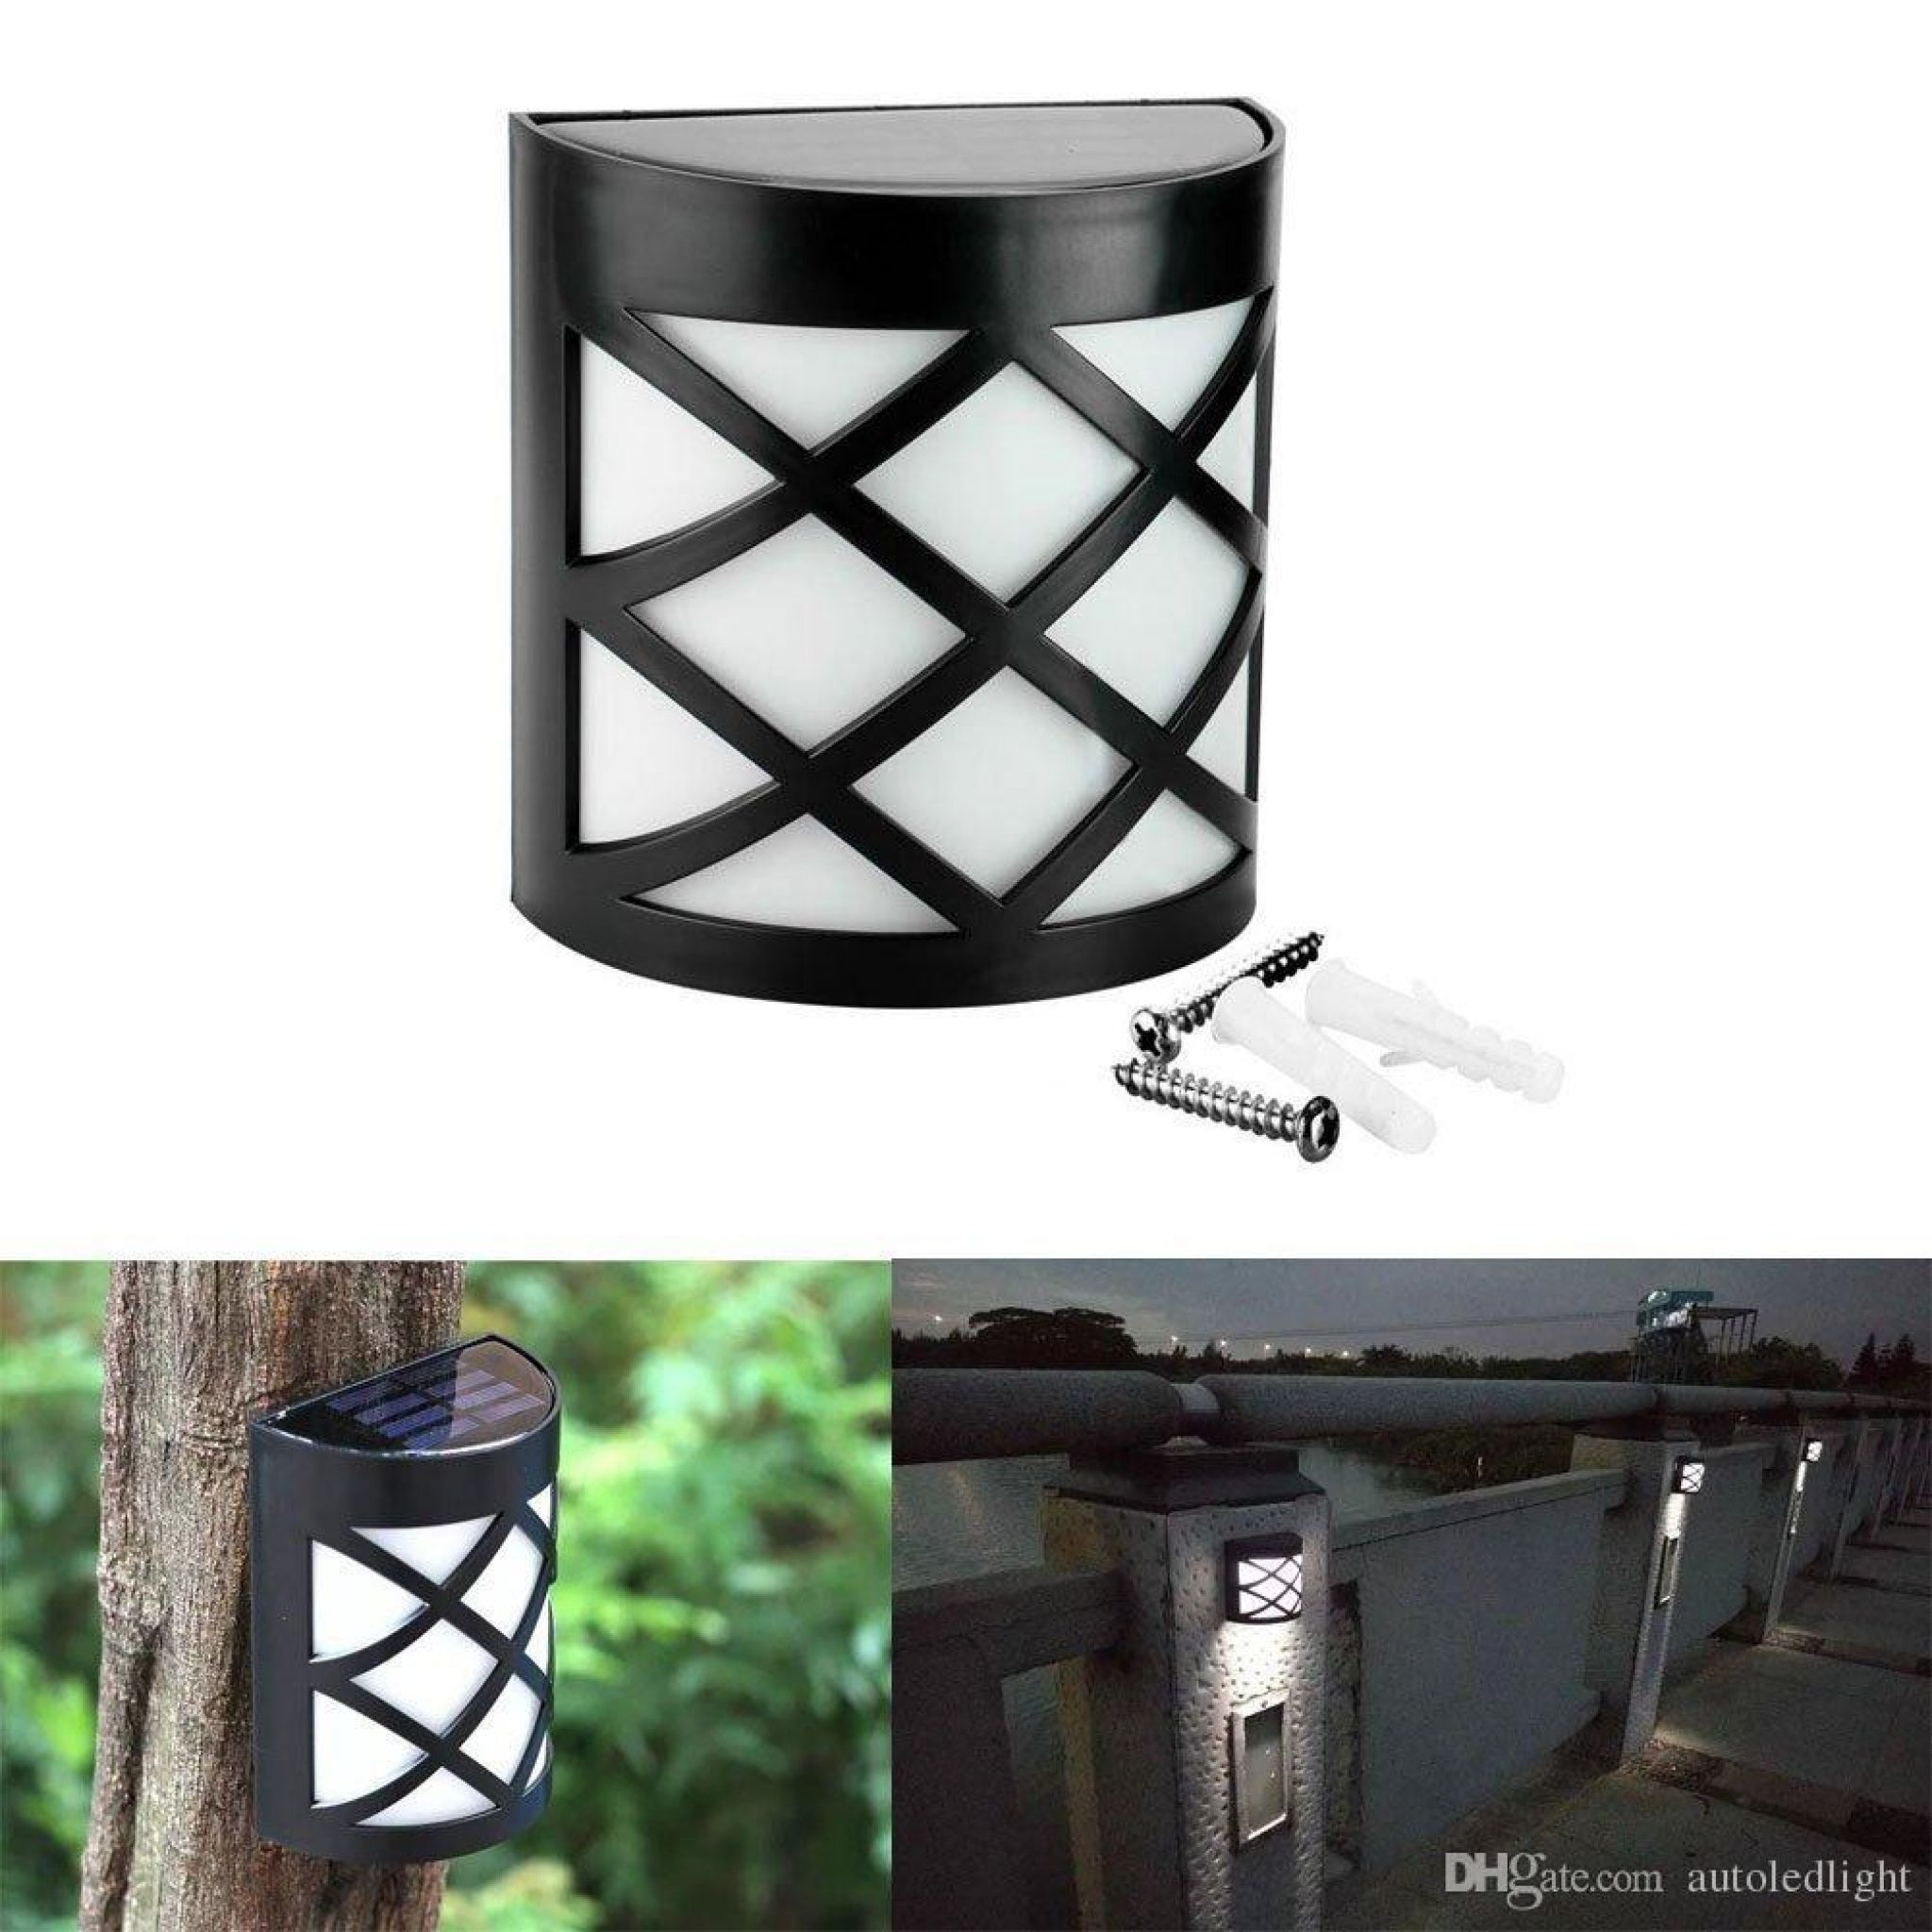 Outdoor Solar Lights Lowes Entrancing Outdoor Solar Powered Lights  Lowes Paint Colors Interior Check Decorating Design